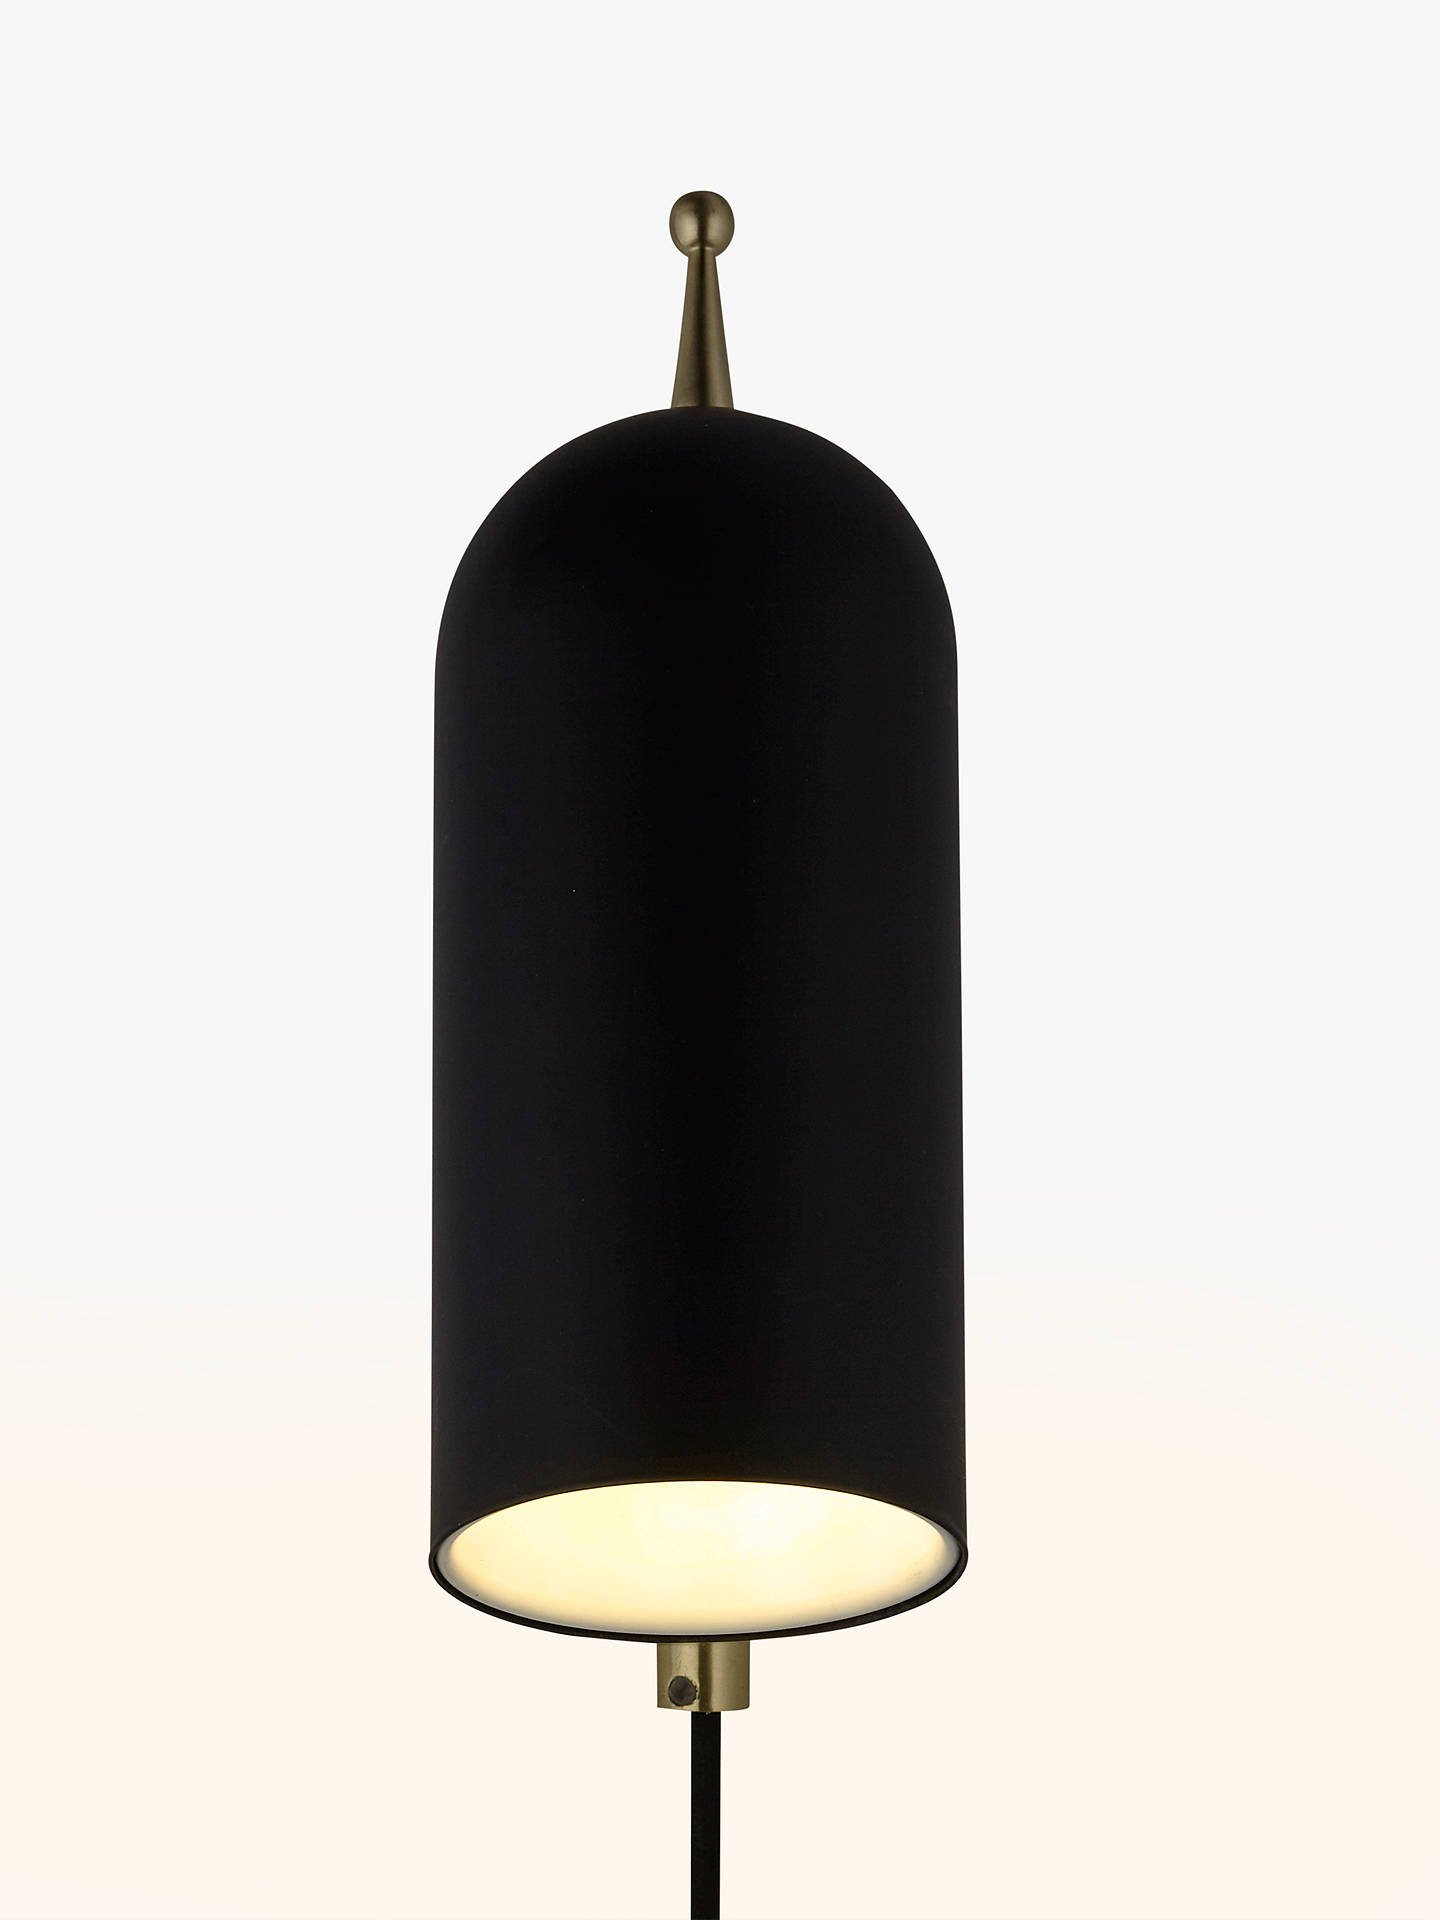 BuyDesign Project by John Lewis No.045 LED Wall Light, Black Online at johnlewis.com